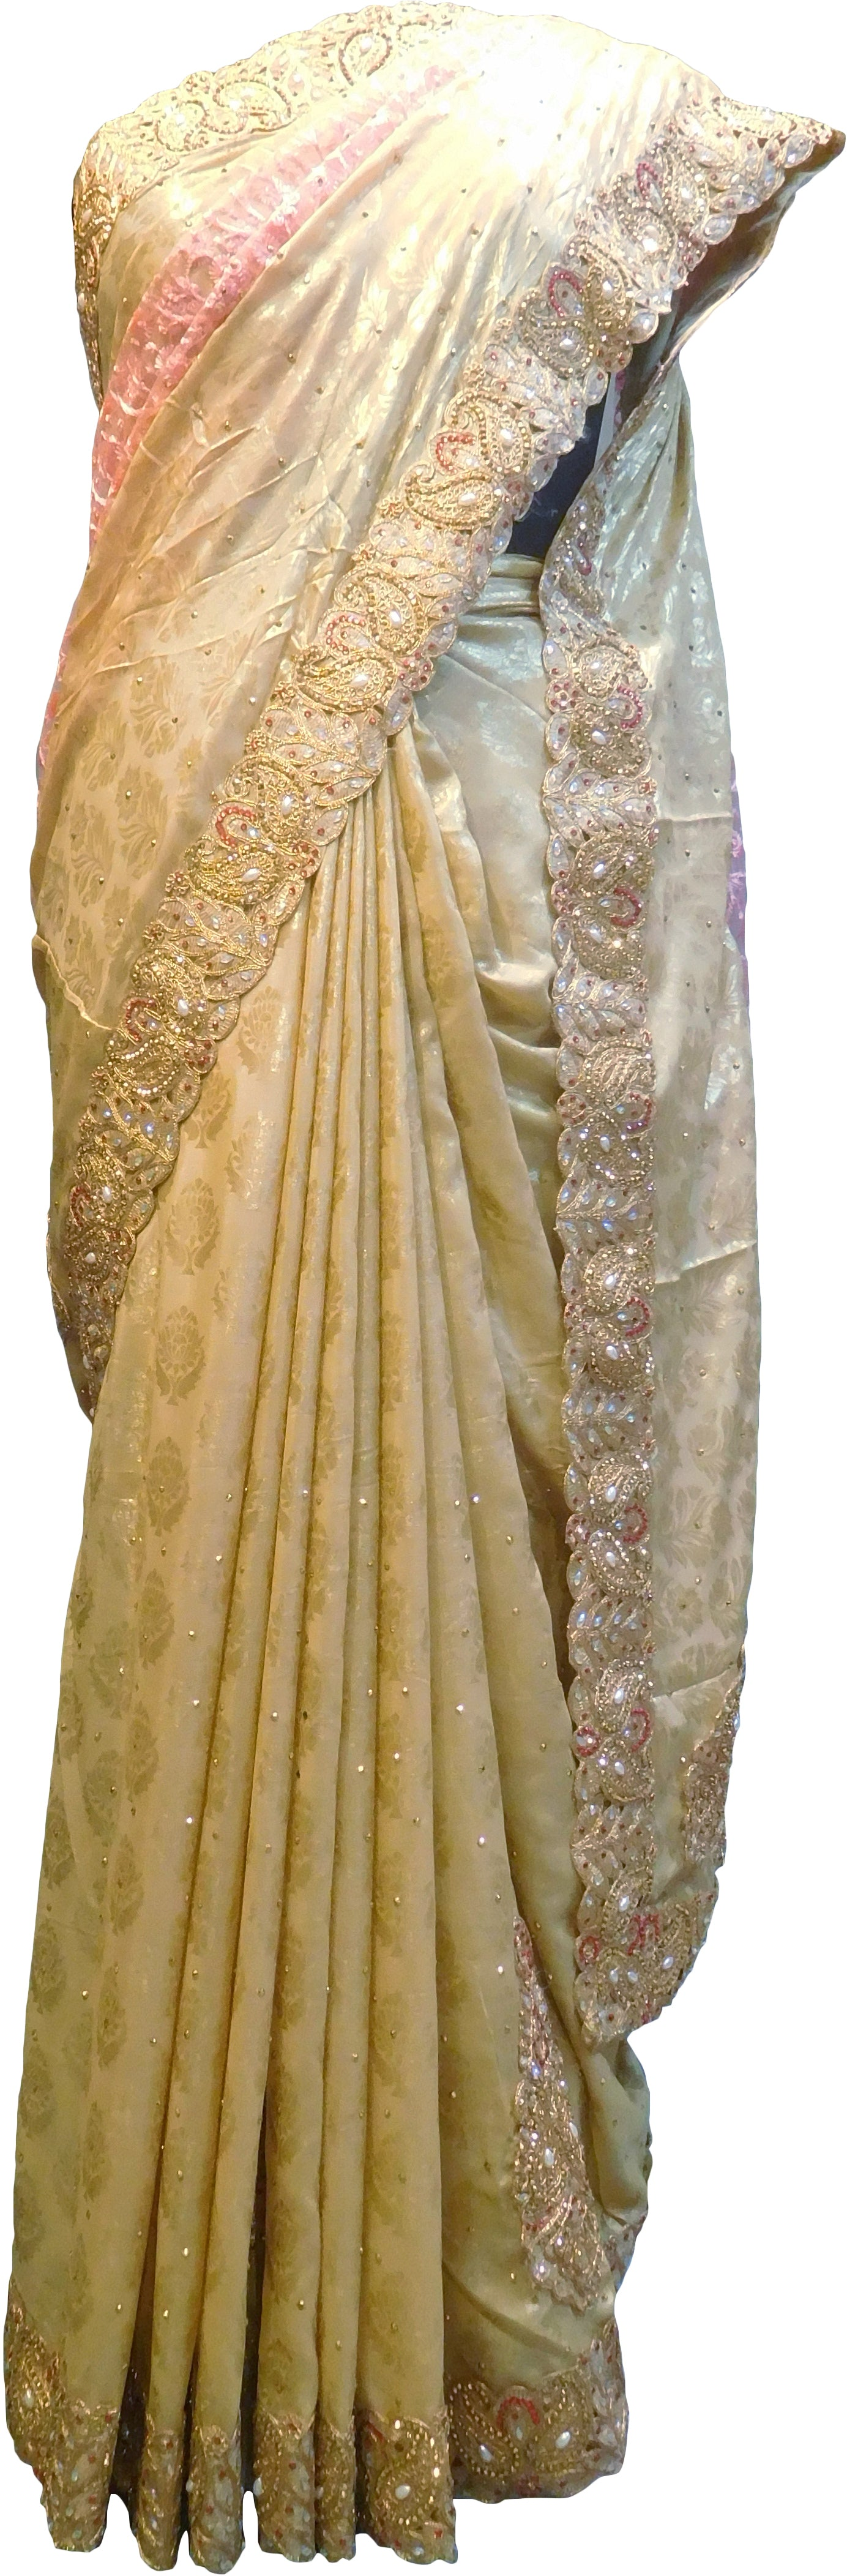 SMSAREE Pink & Cream Designer Wedding Partywear Brasso & Net Zari Thread Pearl & Stone Hand Embroidery Work Bridal Saree Sari With Blouse Piece F199